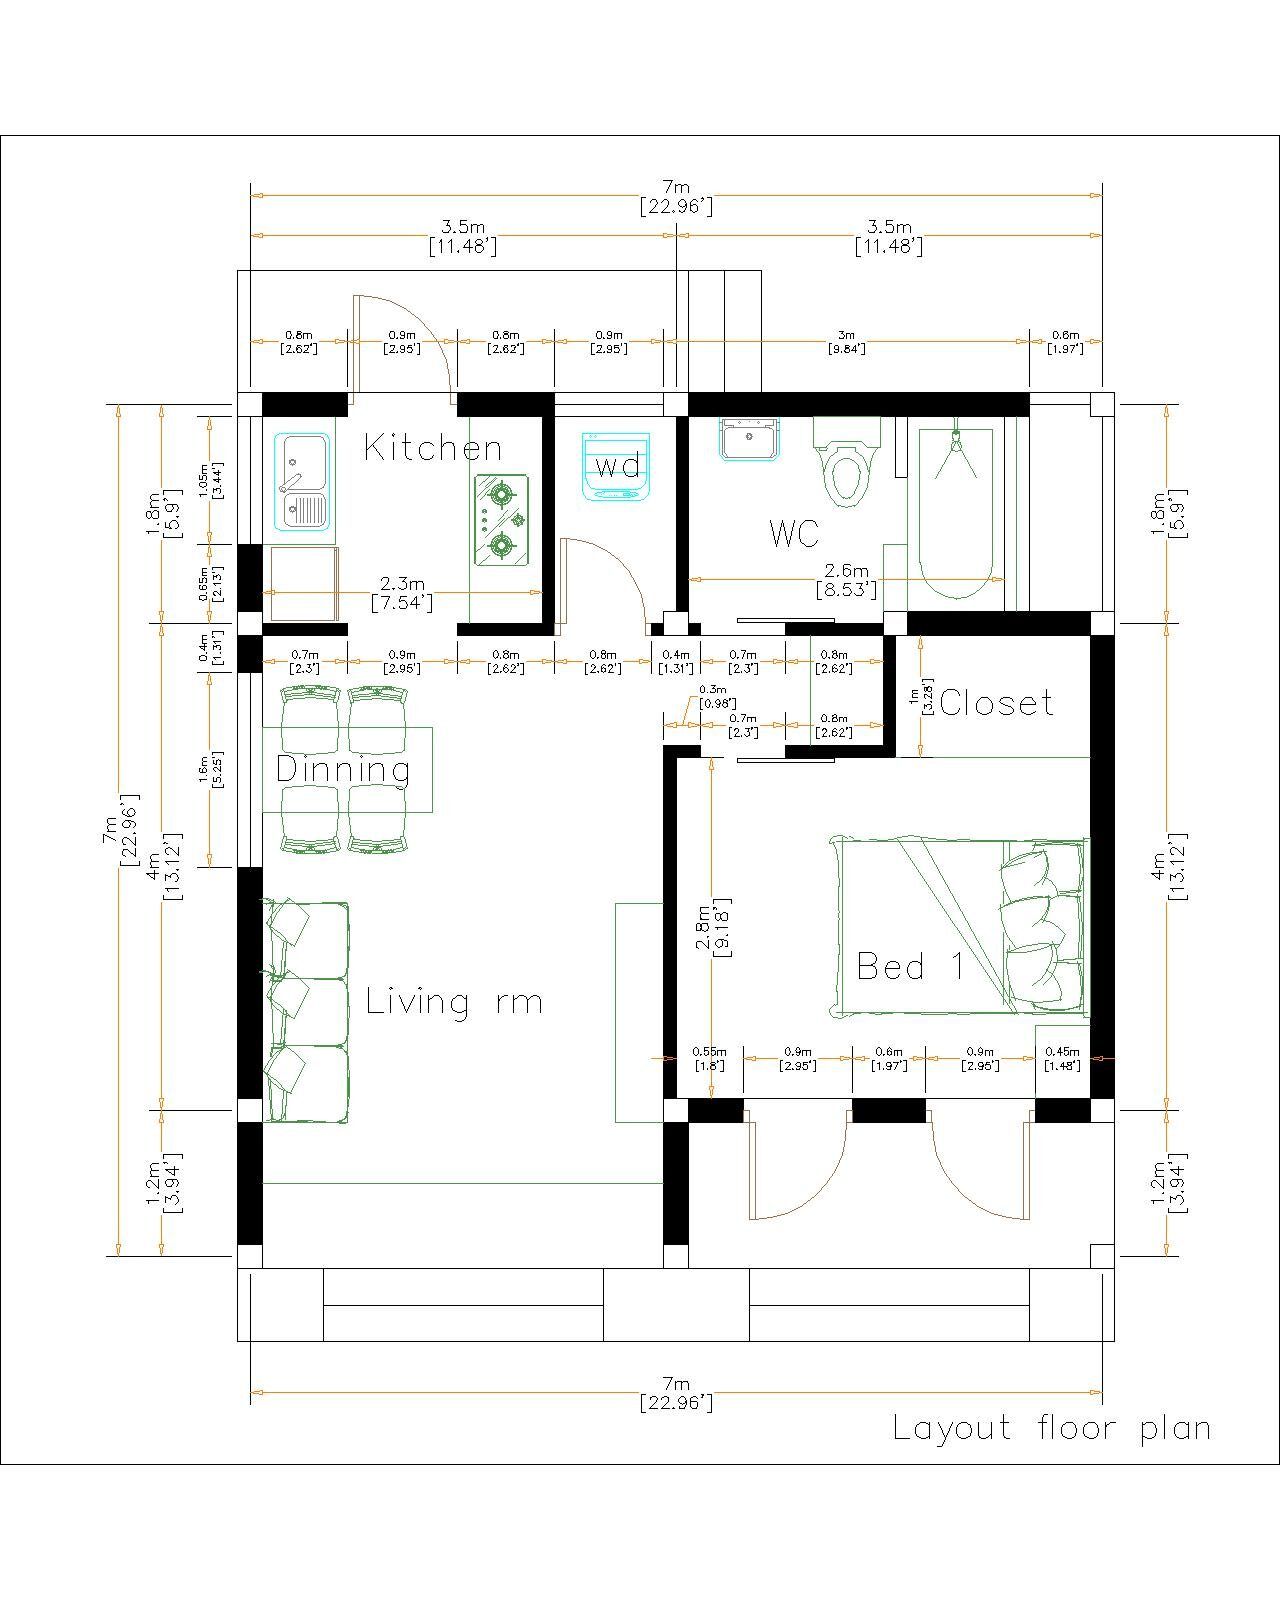 Modern Small House Design 7x7 Meter 23x23 Feet One Bed Layout floor plan